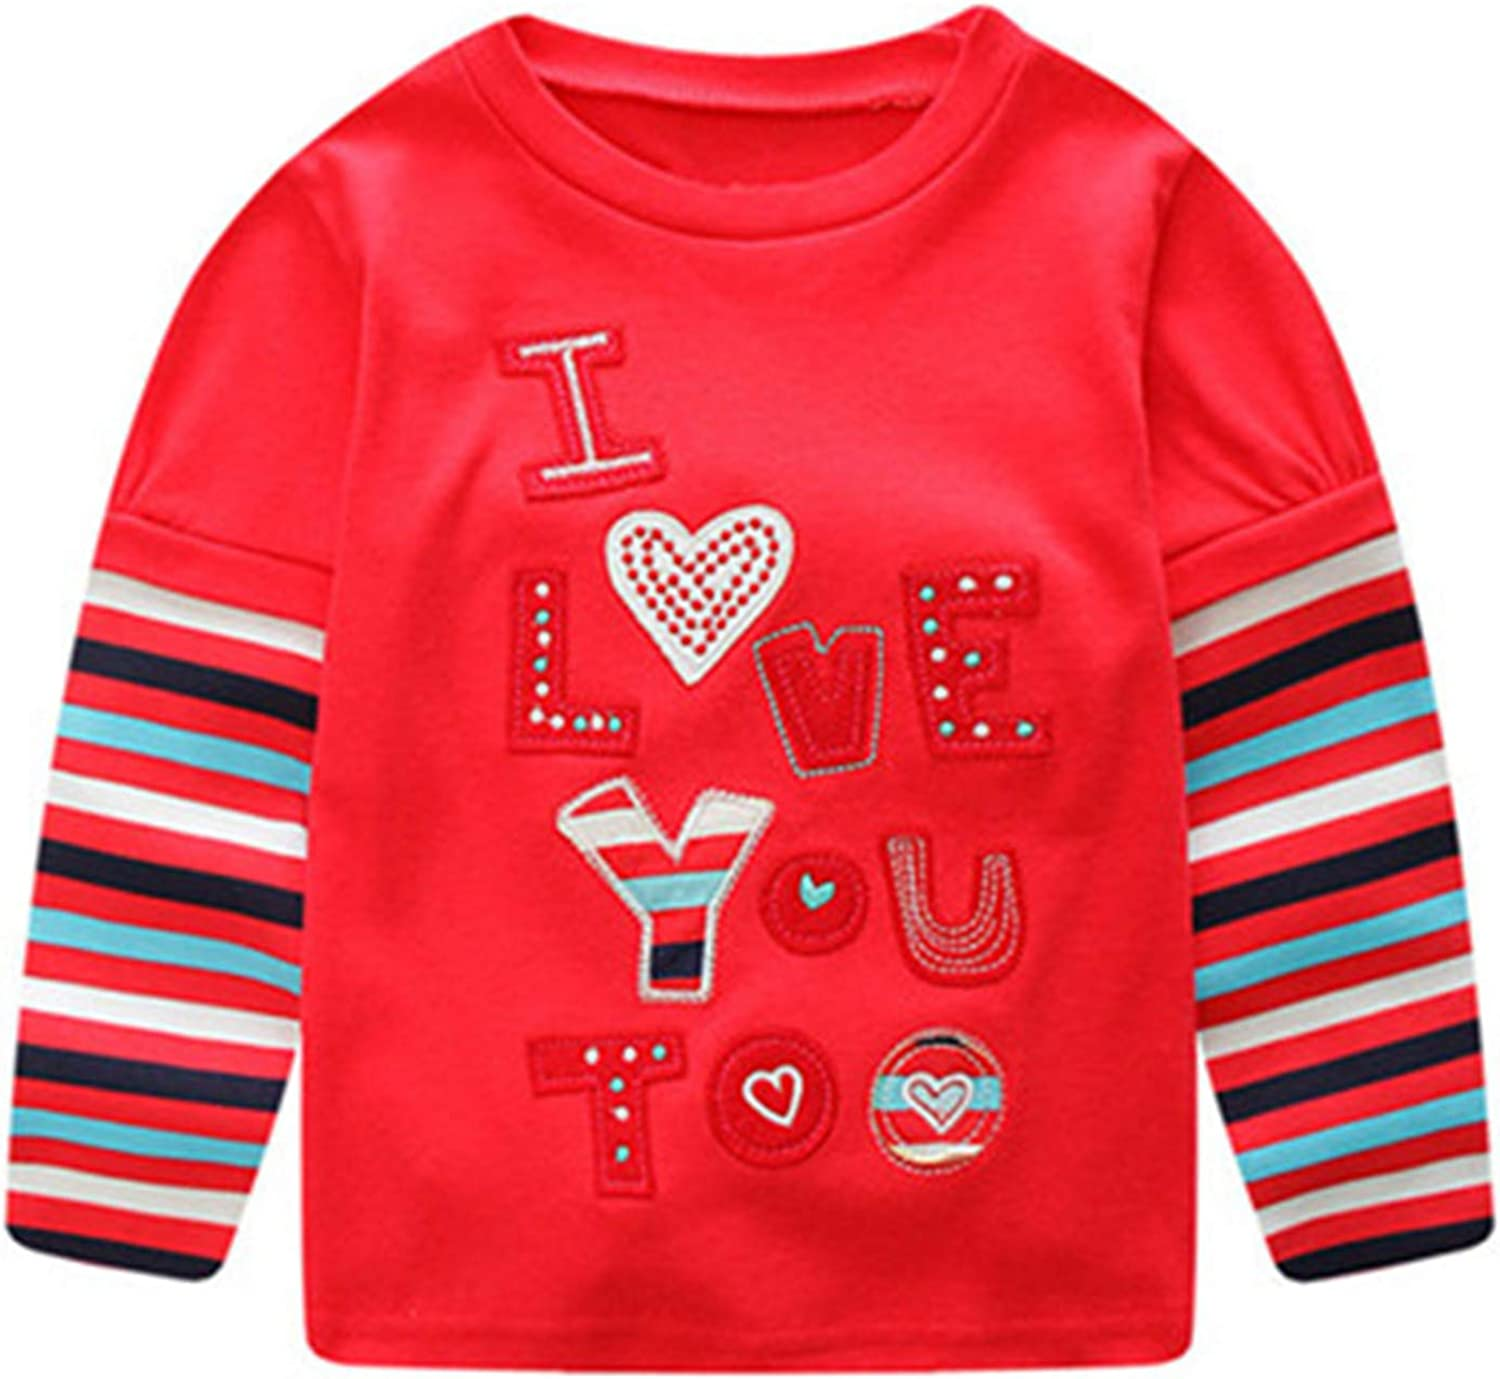 Melissa Wilde Autumn Winter Kids Sweatshirts Children Baby Girl Letter Printing Striped Long Sleeve Tops